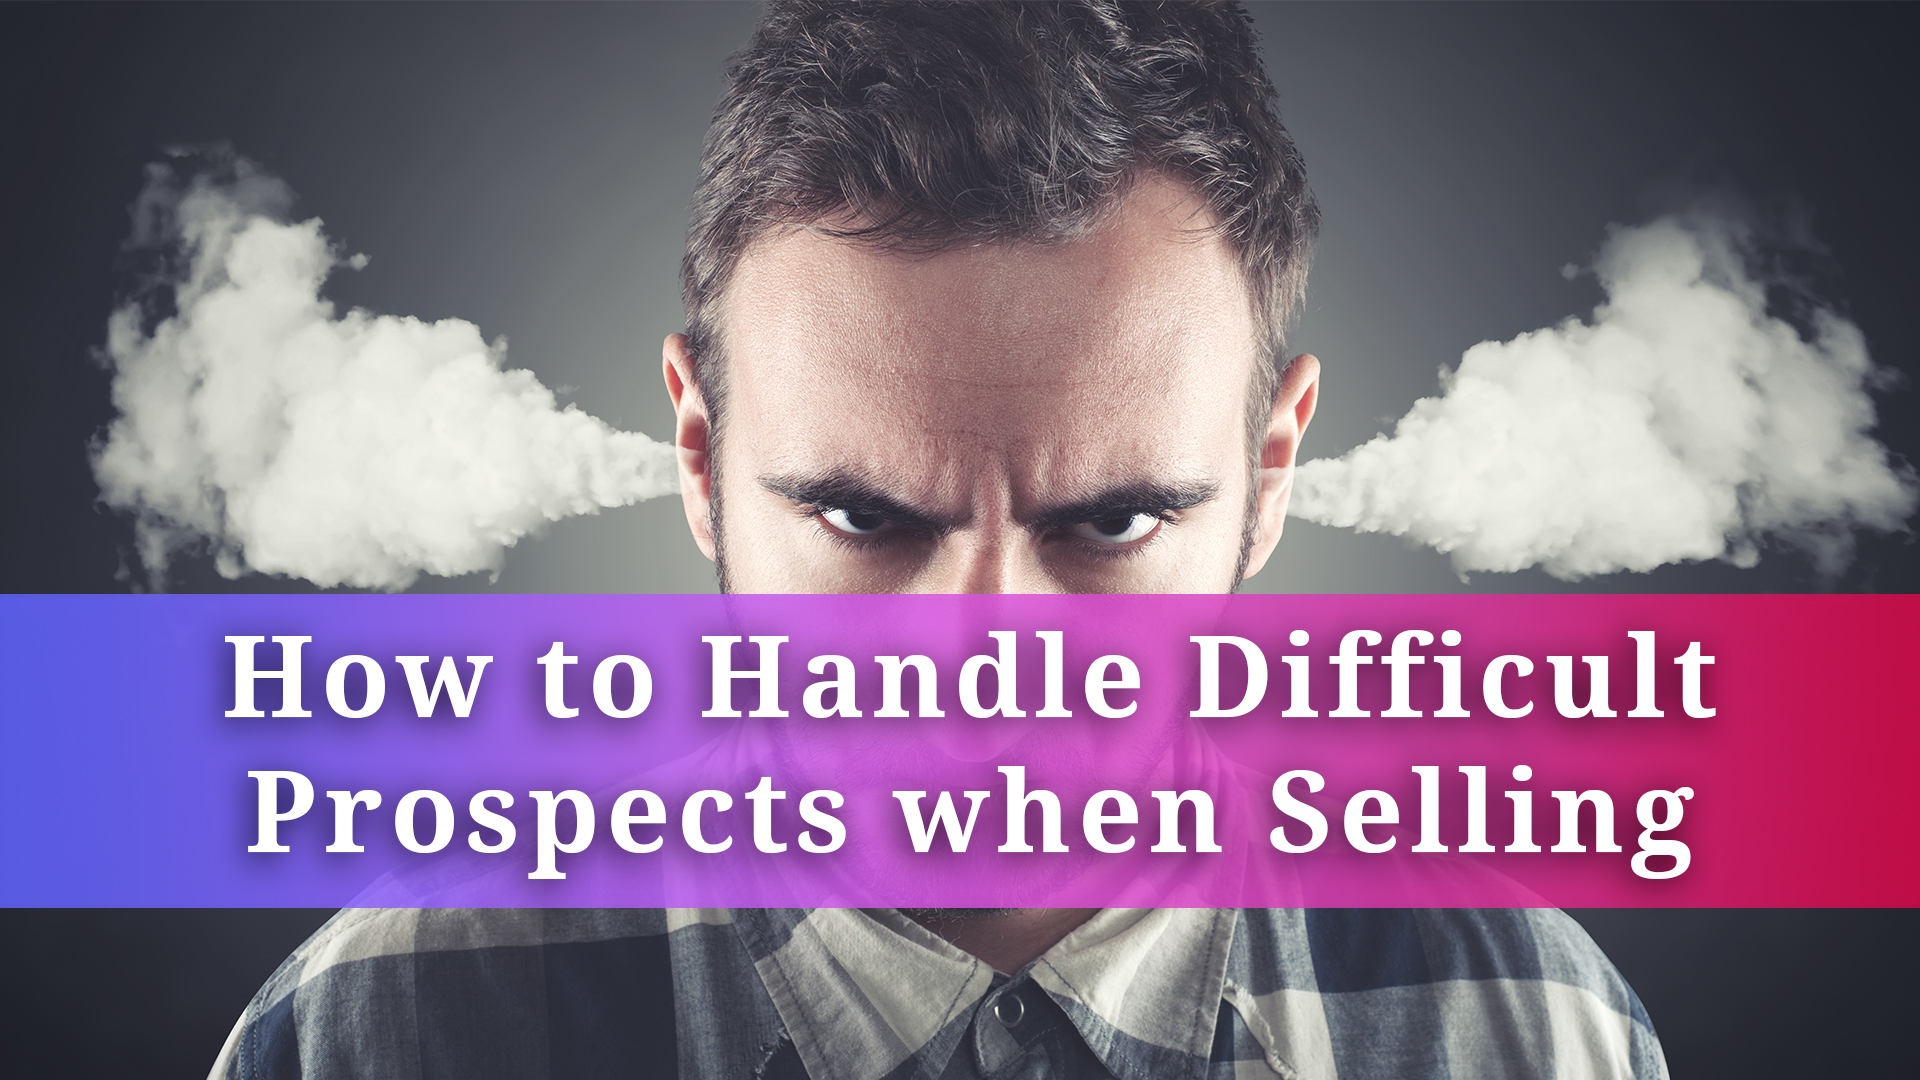 CP_Thumbnail_YT_How to Handle Difficult Prospects when Selling_v1